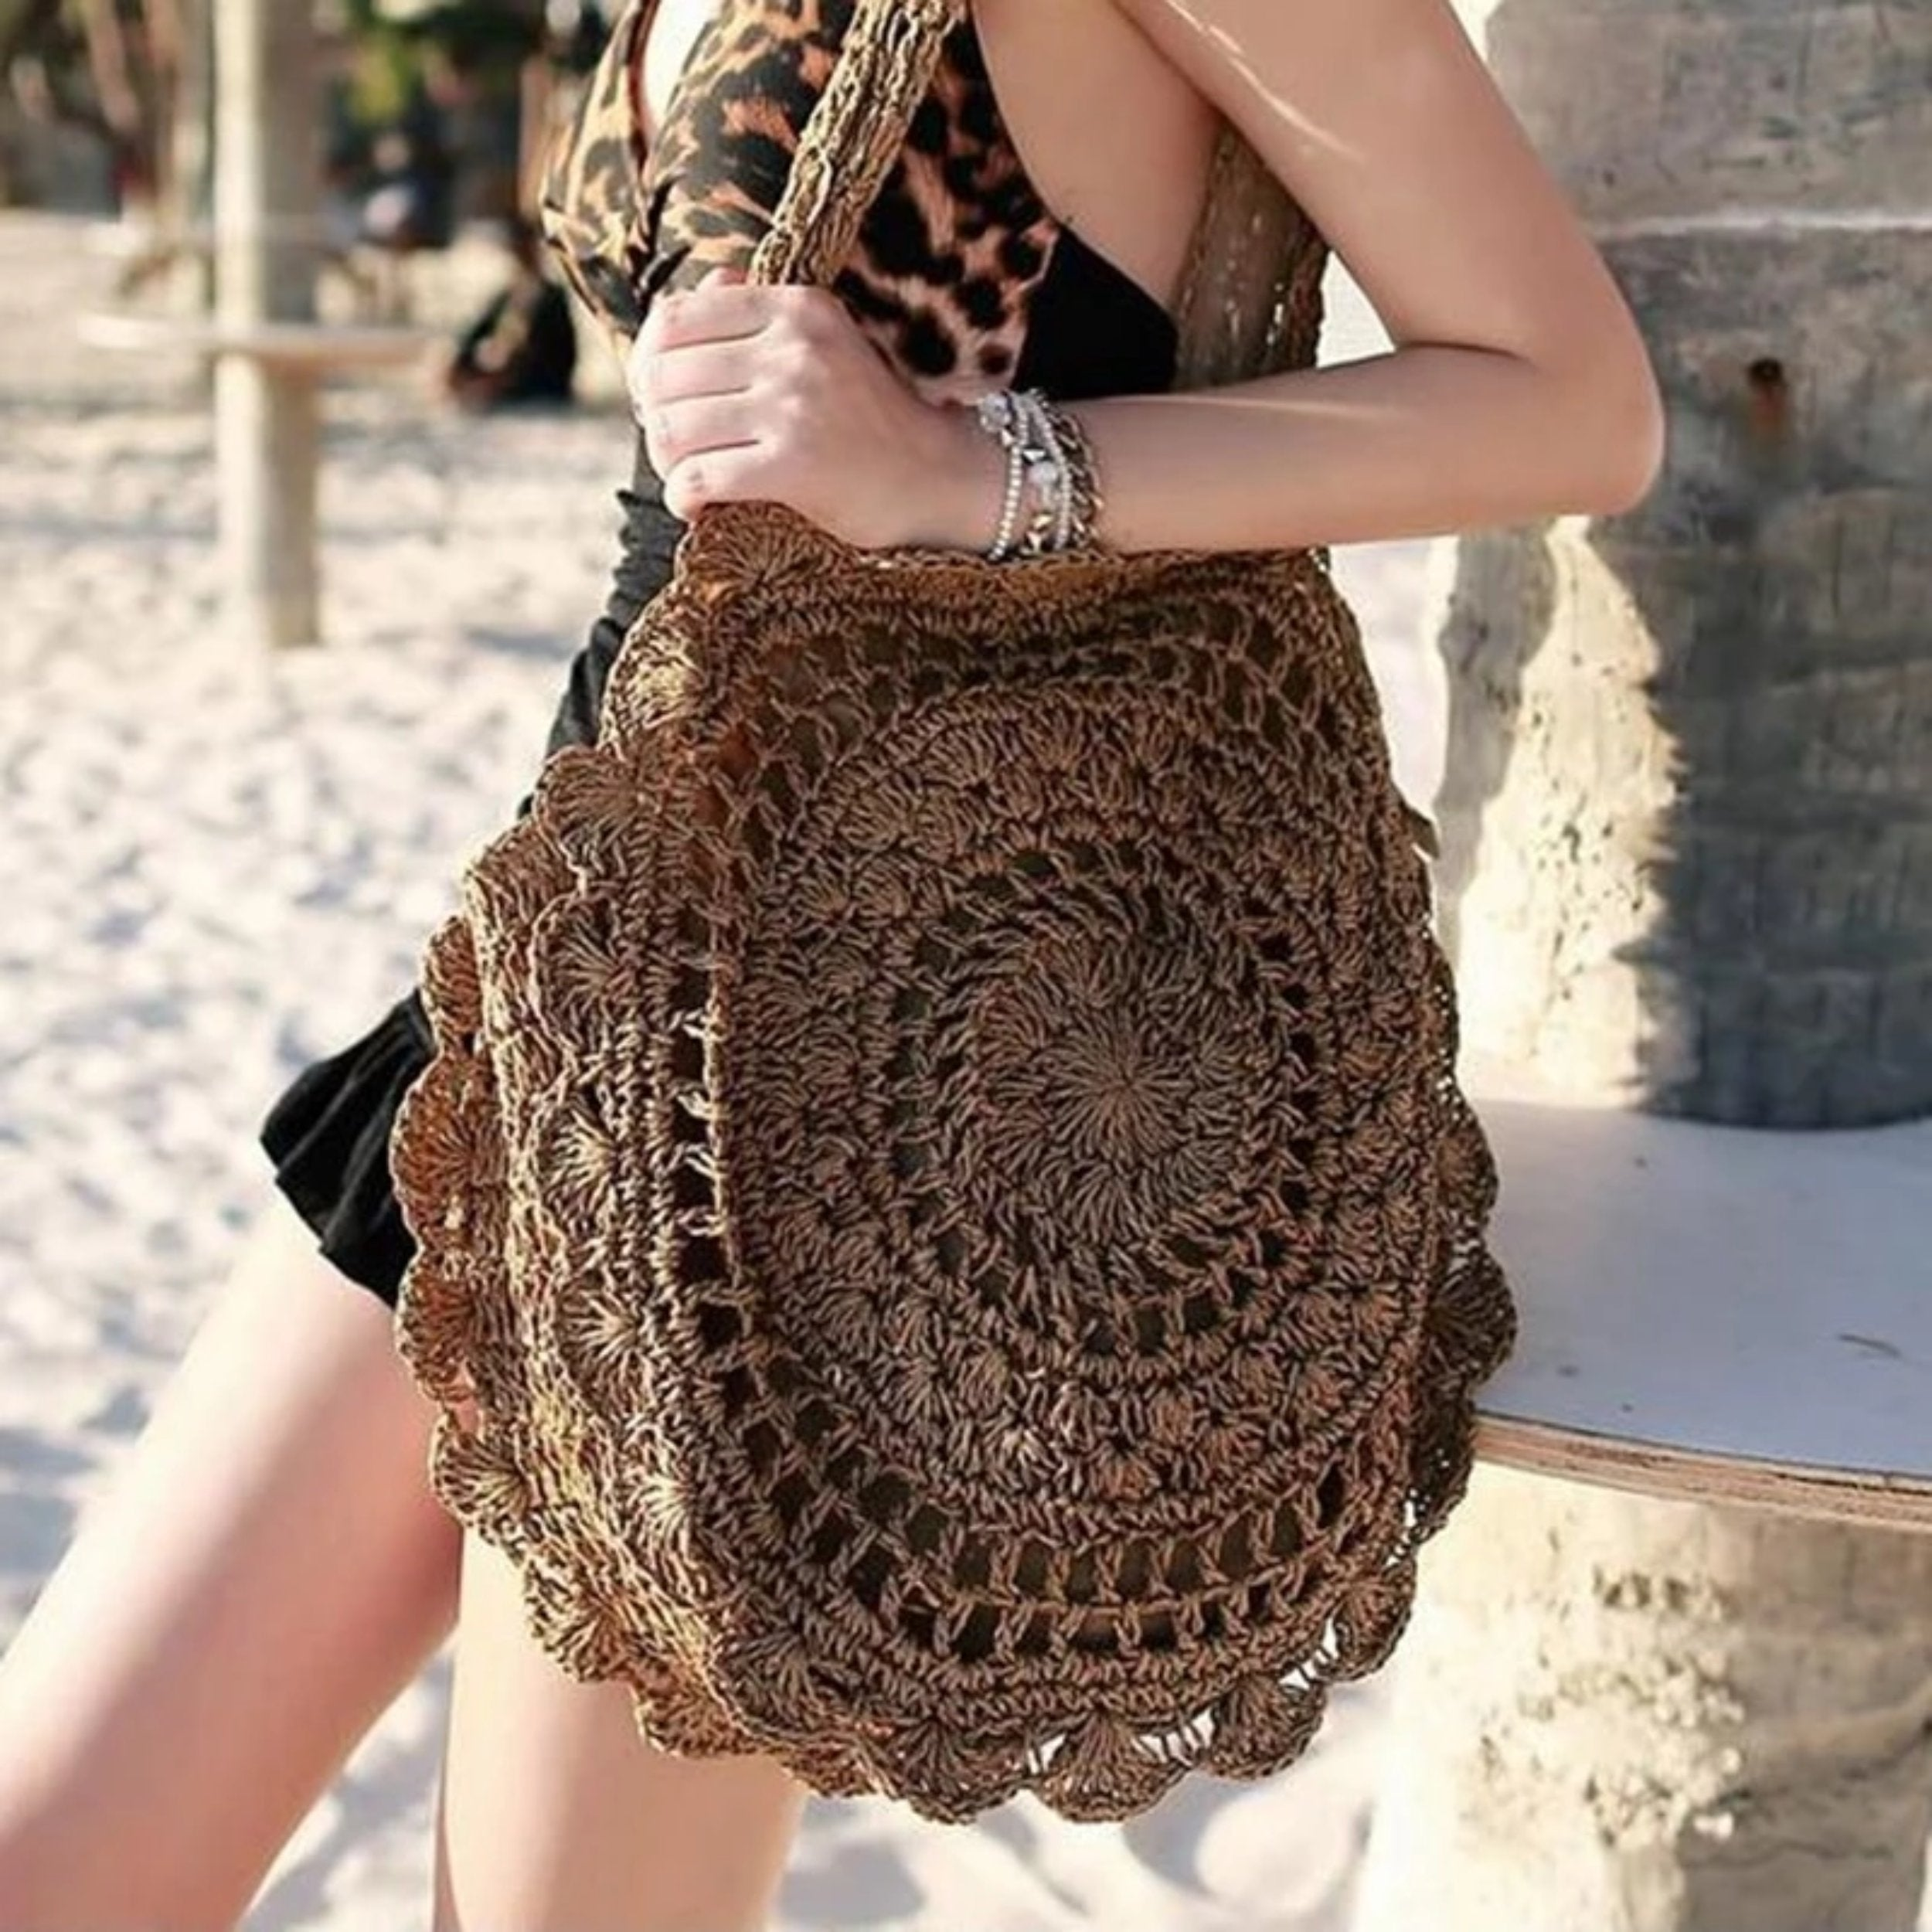 Misty - The Knitted Bohemian Woven Shoulder Bag - Izzabel